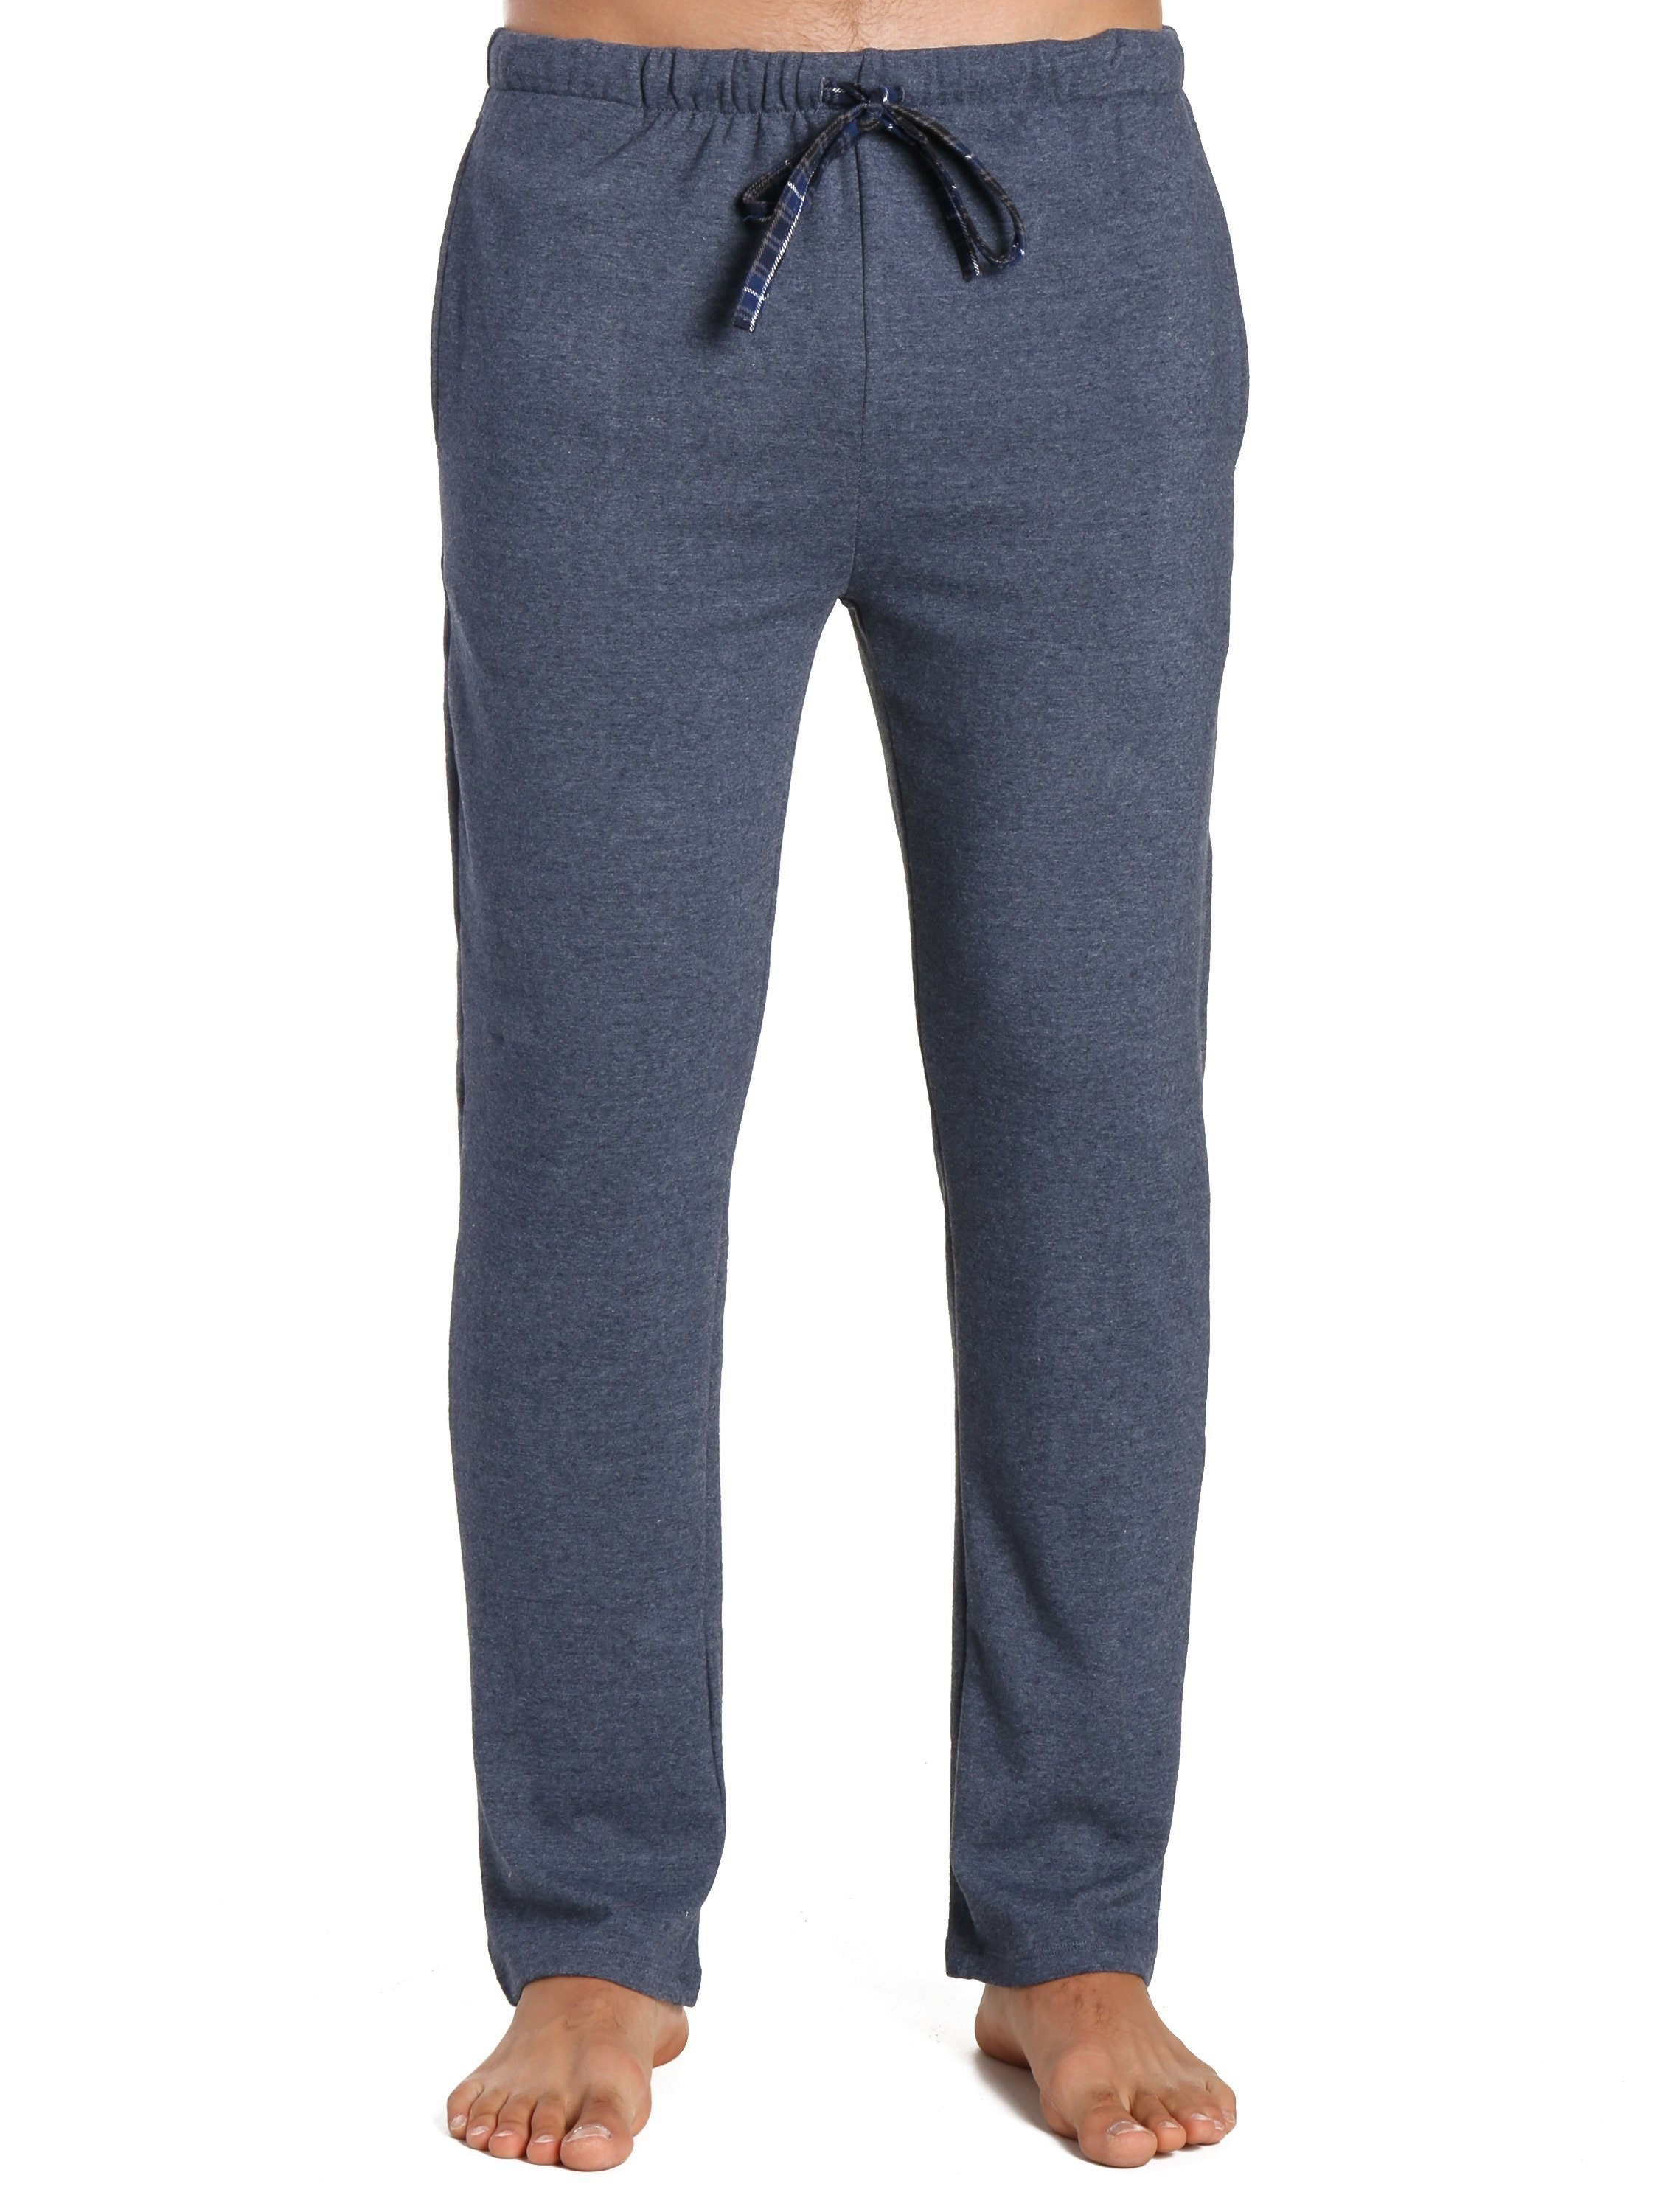 Men's Soft Brushed Rib Slim Fit Lounge Pant - Heathered Navy